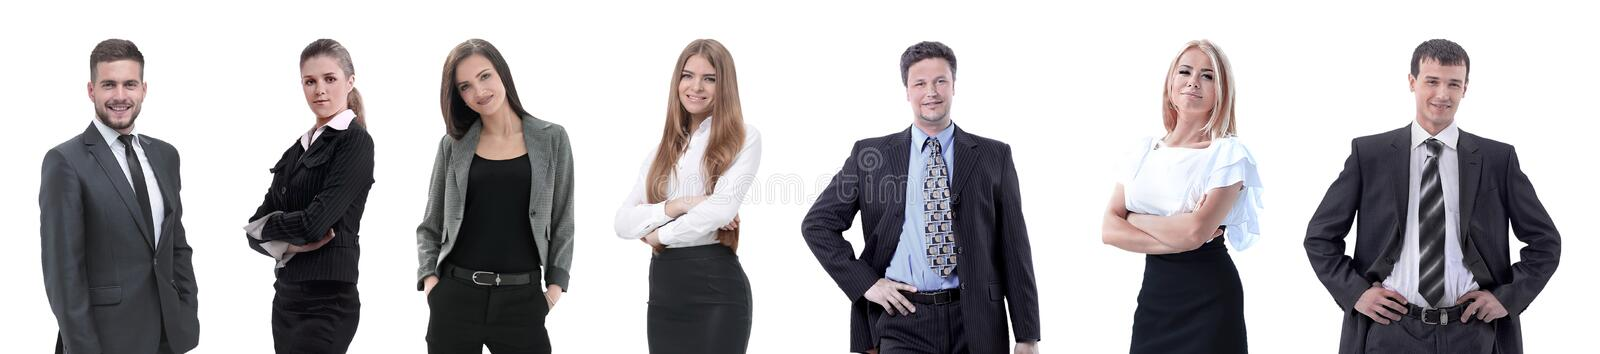 Group of successful business people standing in a row. royalty free stock photo